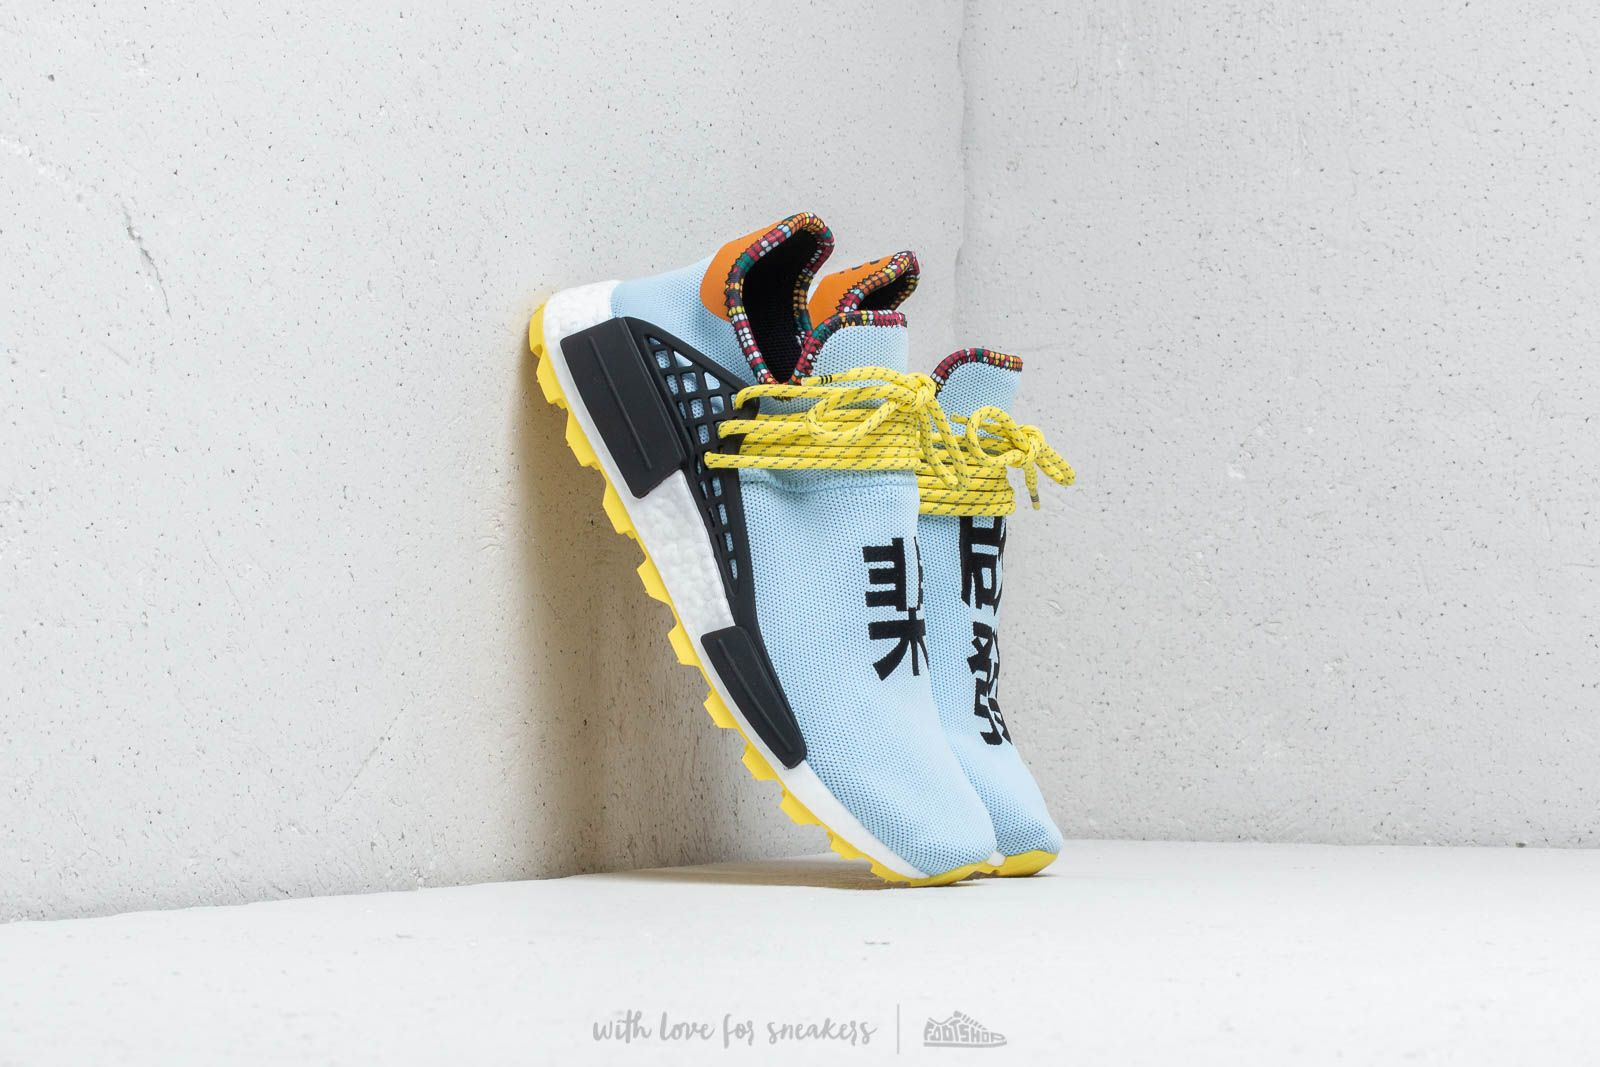 f06071ecc121e adidas x Pharrell Williams Solar Hu NMD Clear Sky  Core Black  Bold Orange